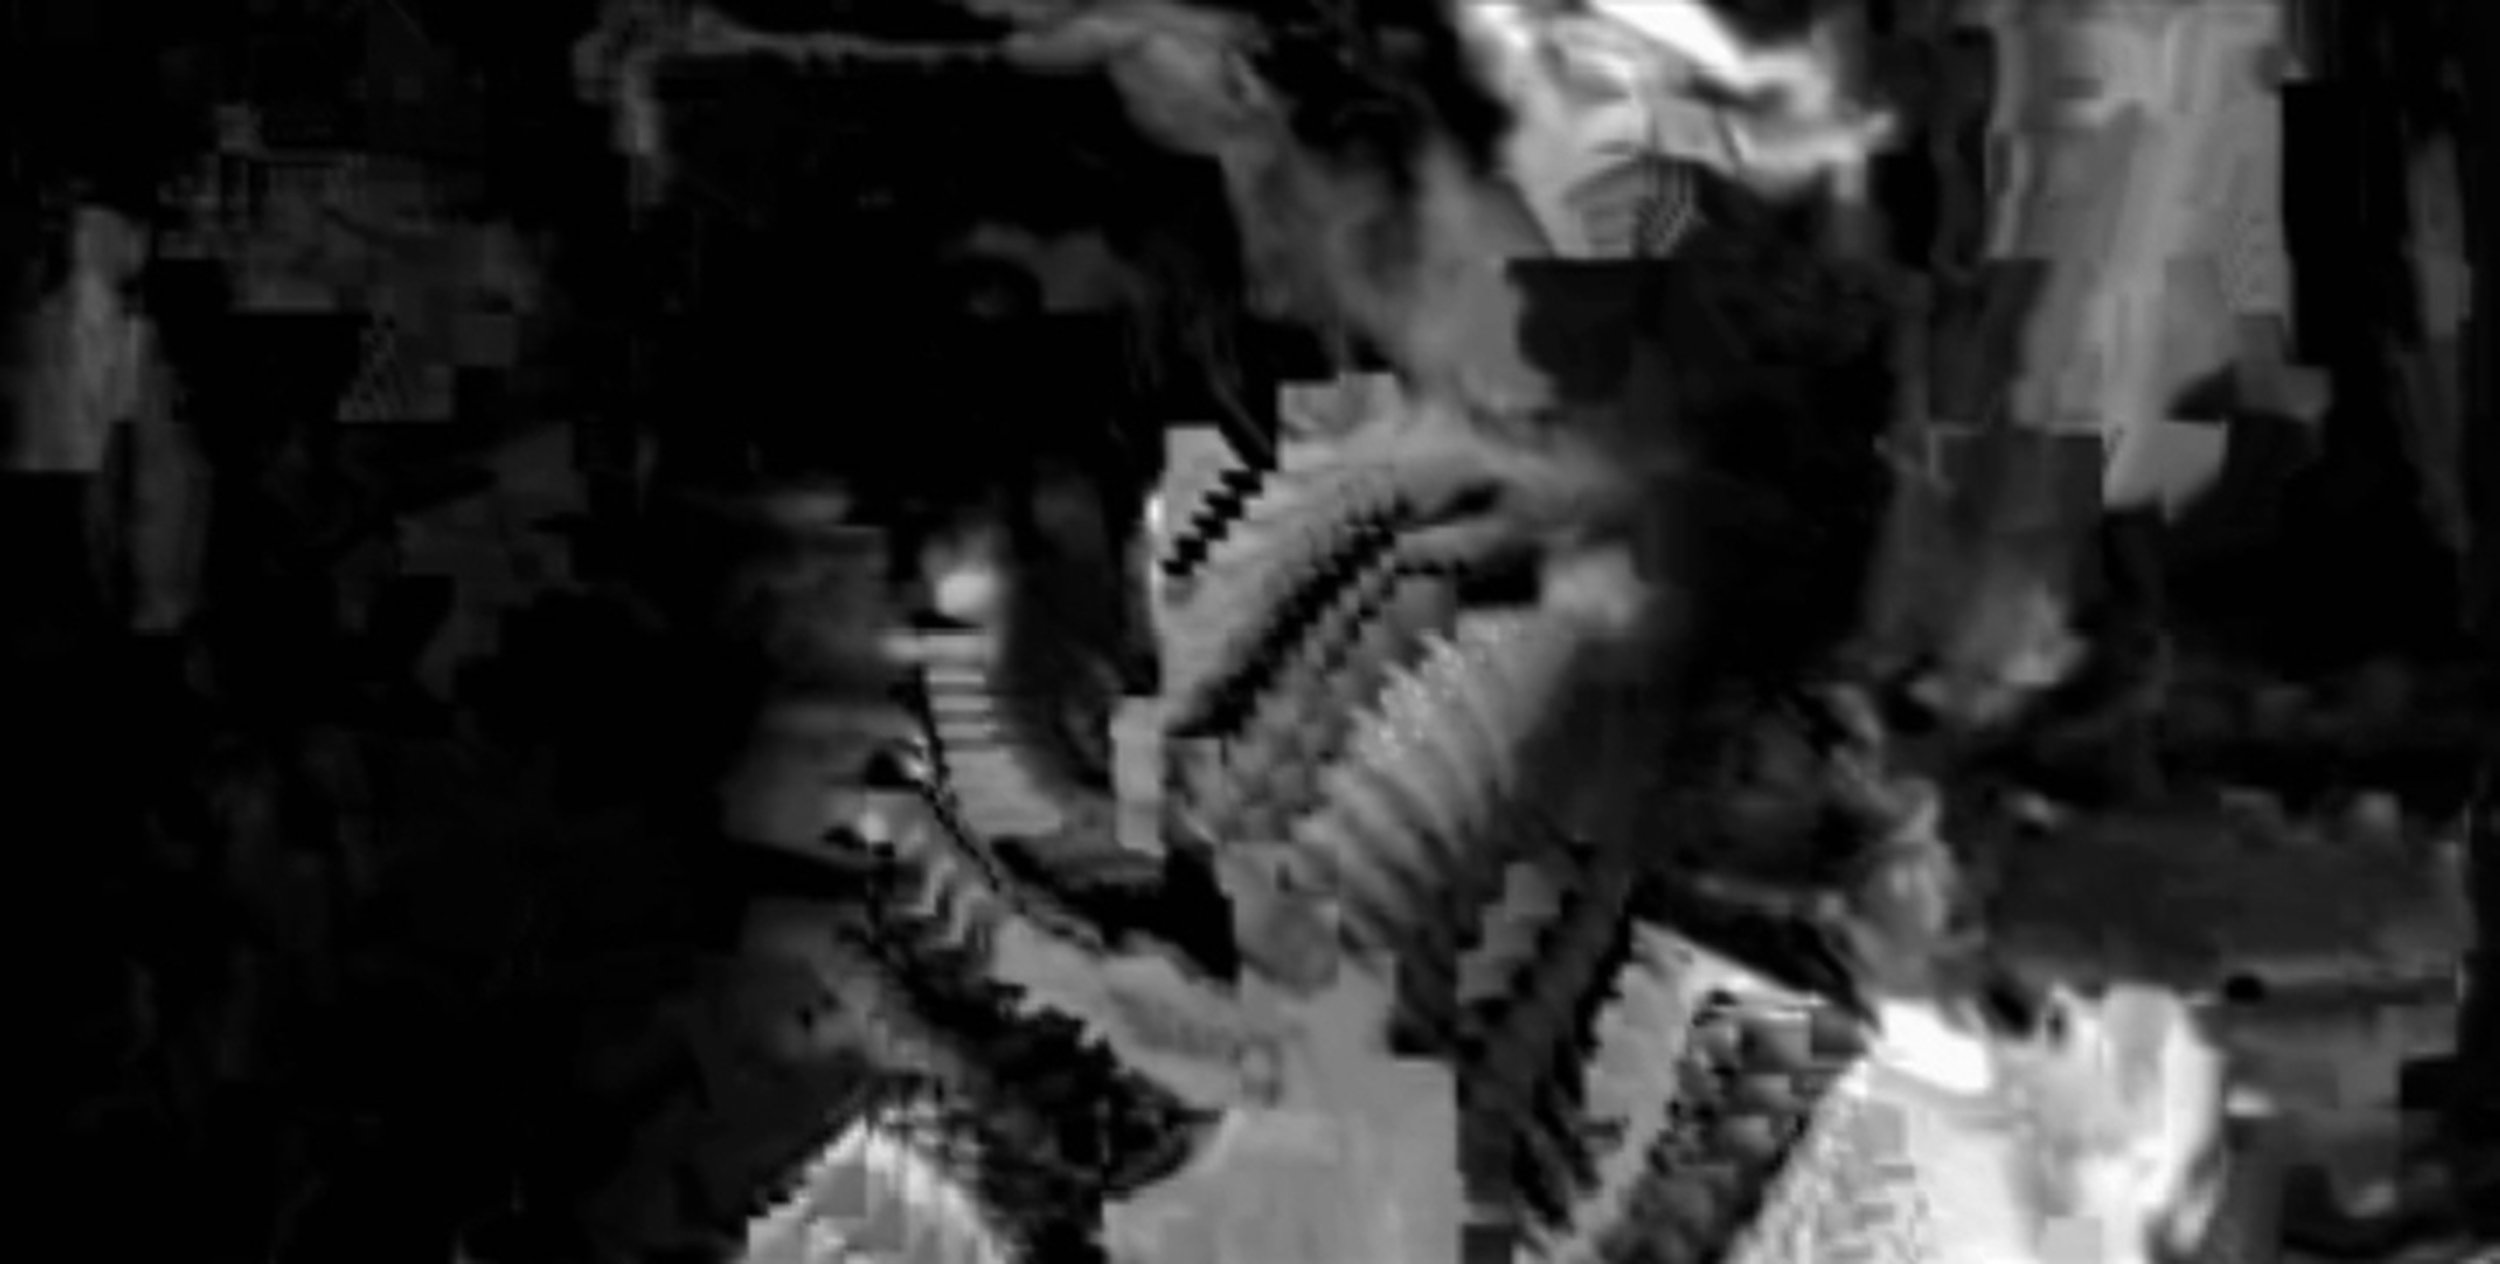 Takeshi Murata, Untitled (Silver), 2006. Still from a video. Courtesy the artist and Electronic Arts Intermix (EAI), New York.